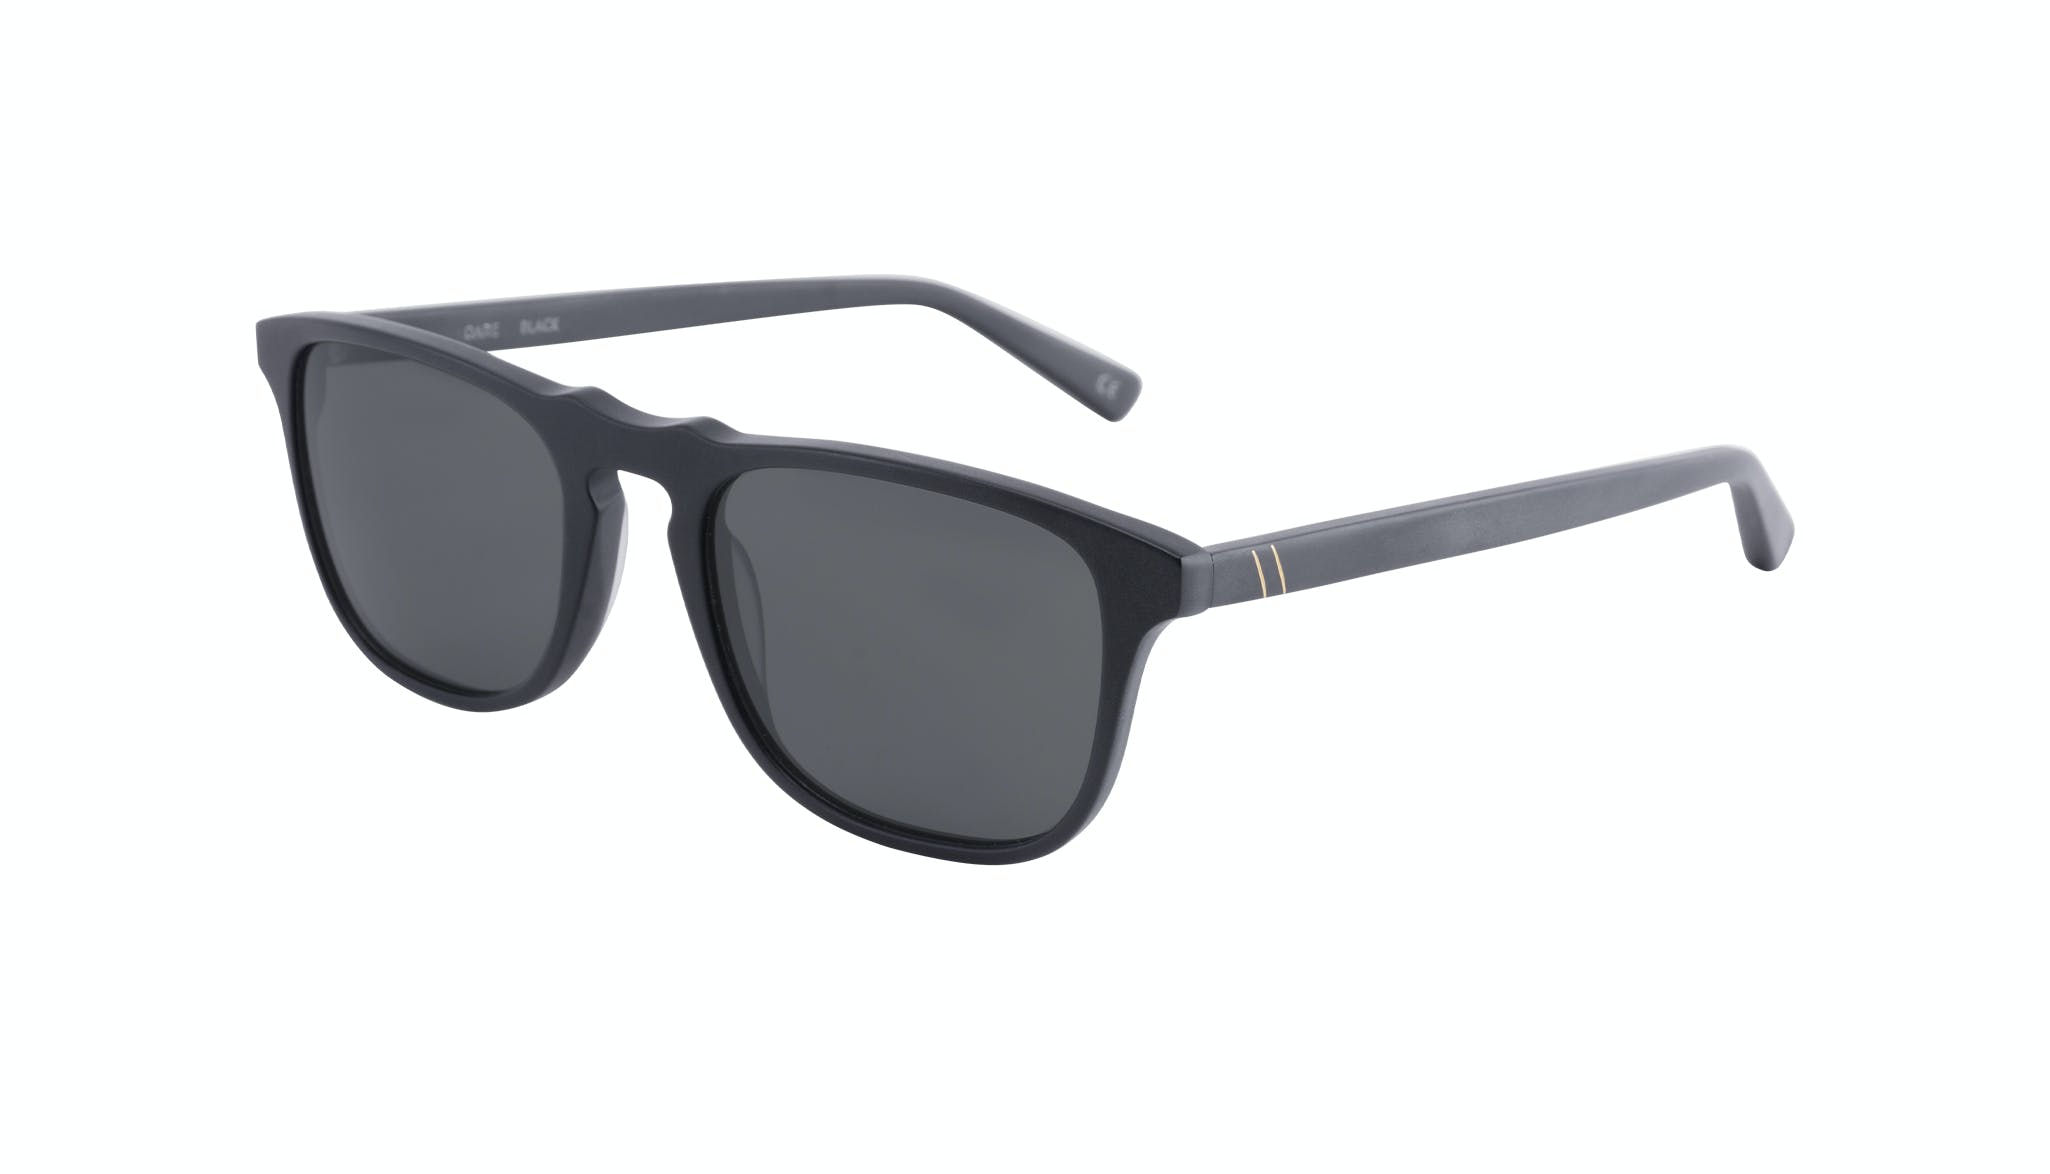 Affordable Fashion Glasses Rectangle Sunglasses Men Dare Matte Black Tilt